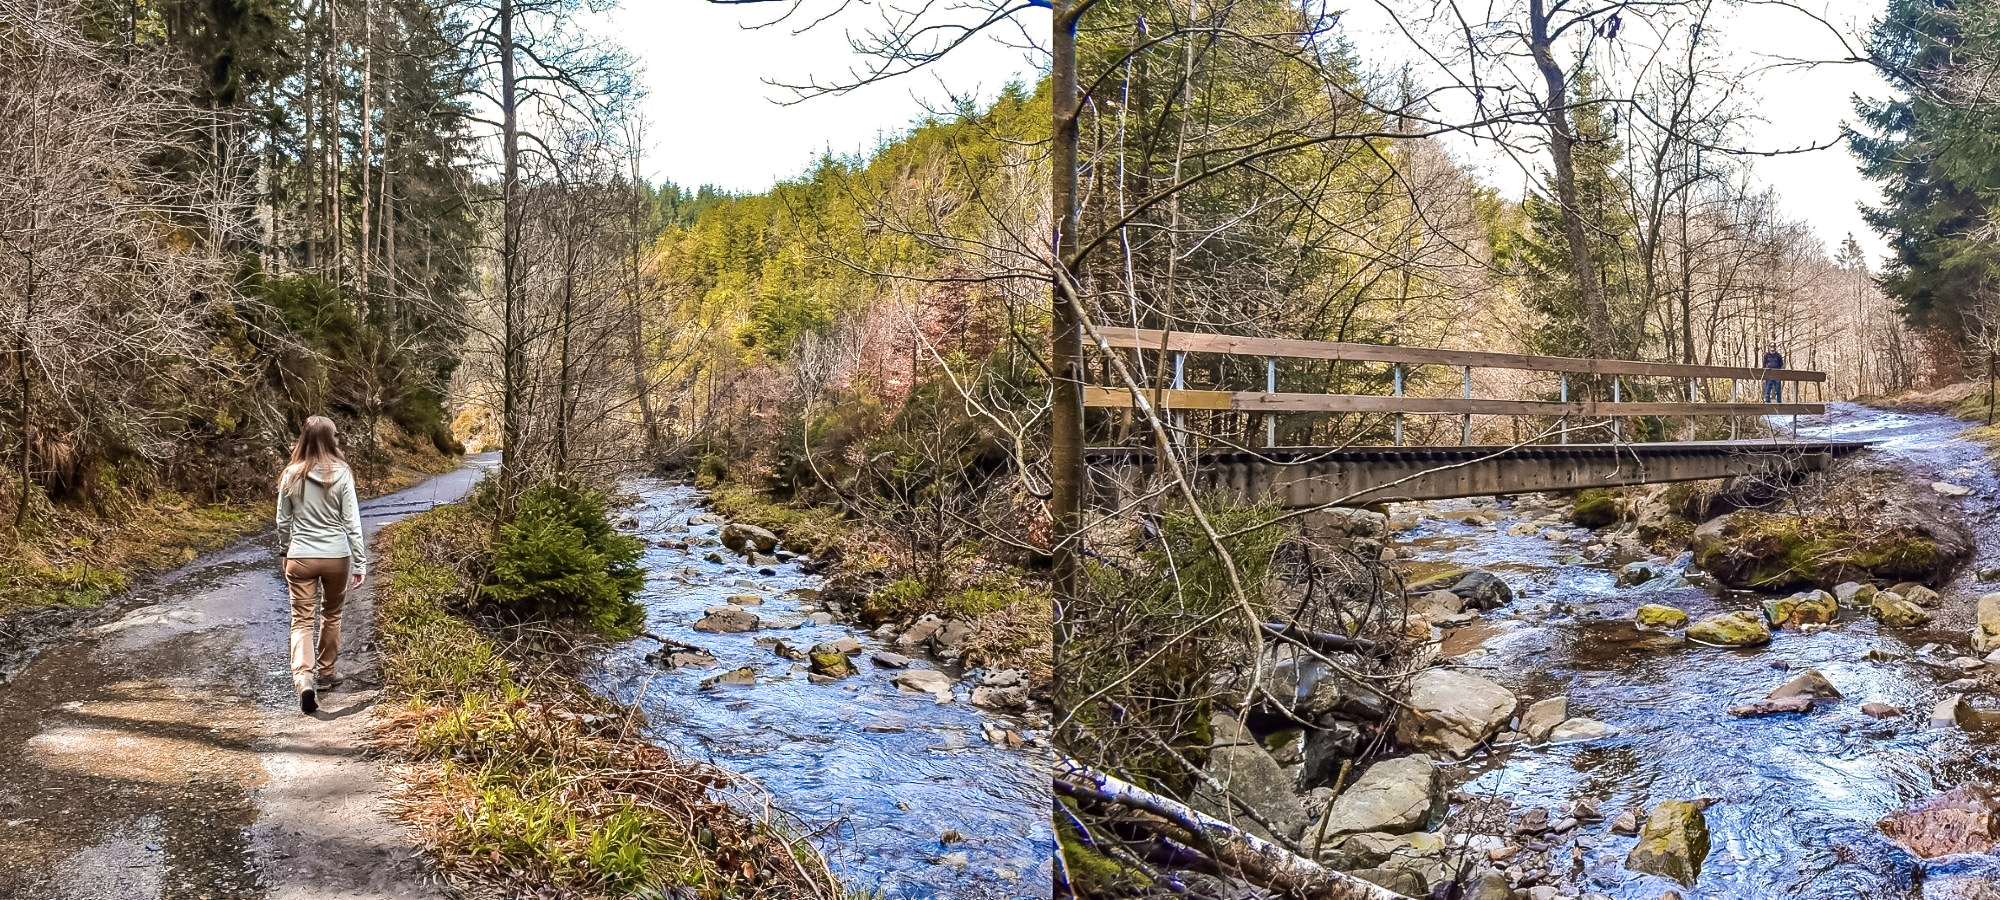 Hikers walking by a a river and bridge on the three valleys ike